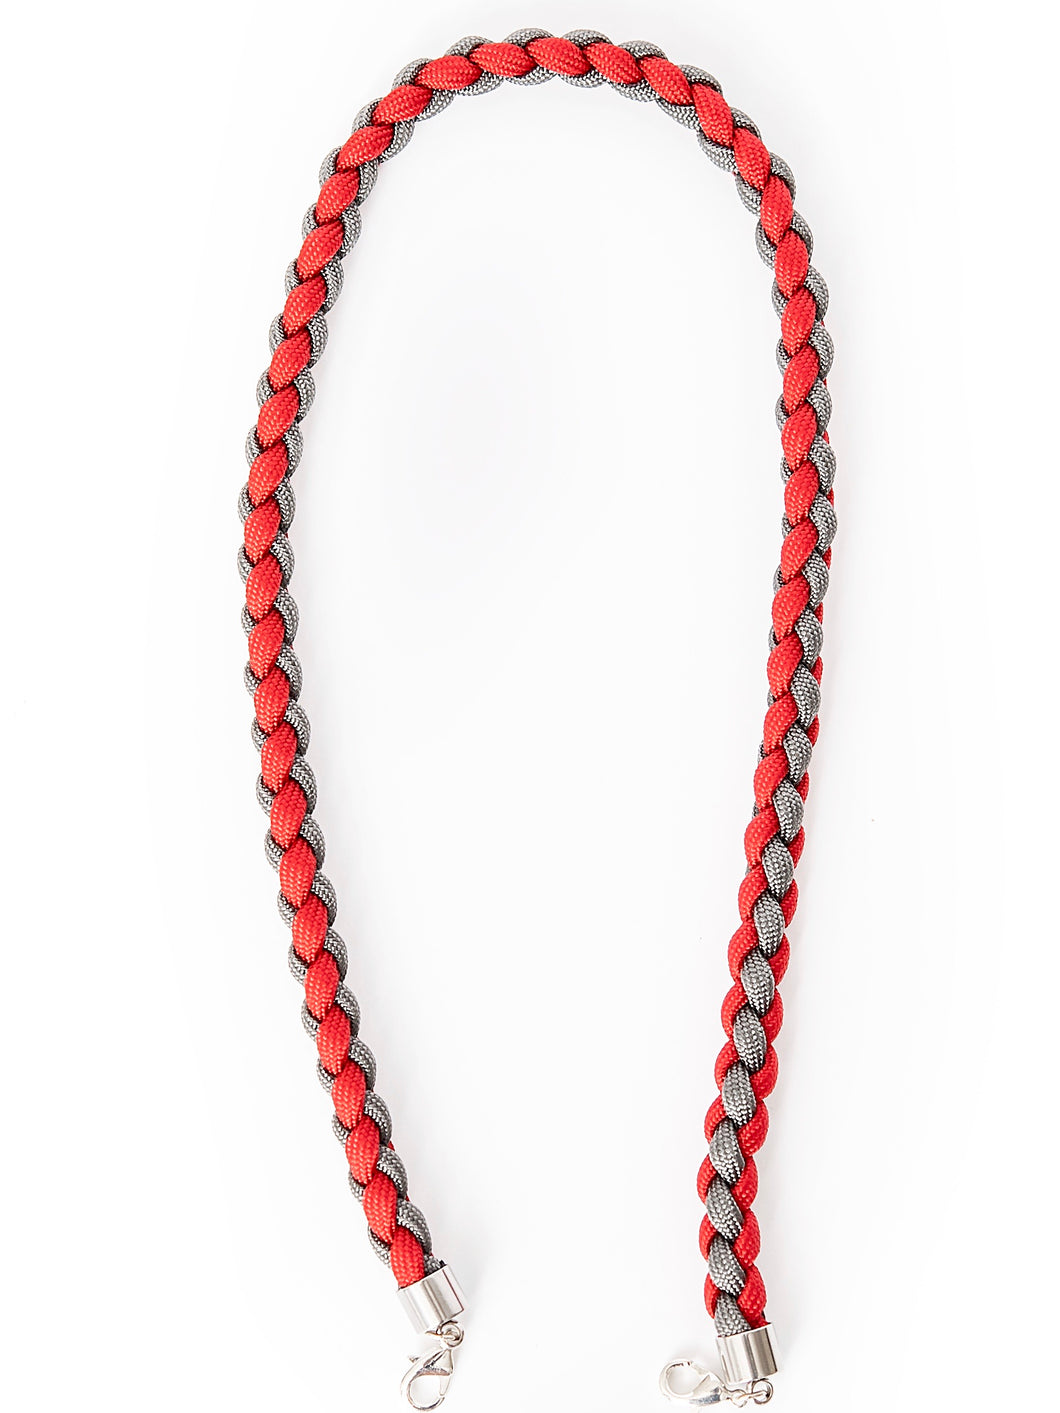 Paracord in Grey/Red